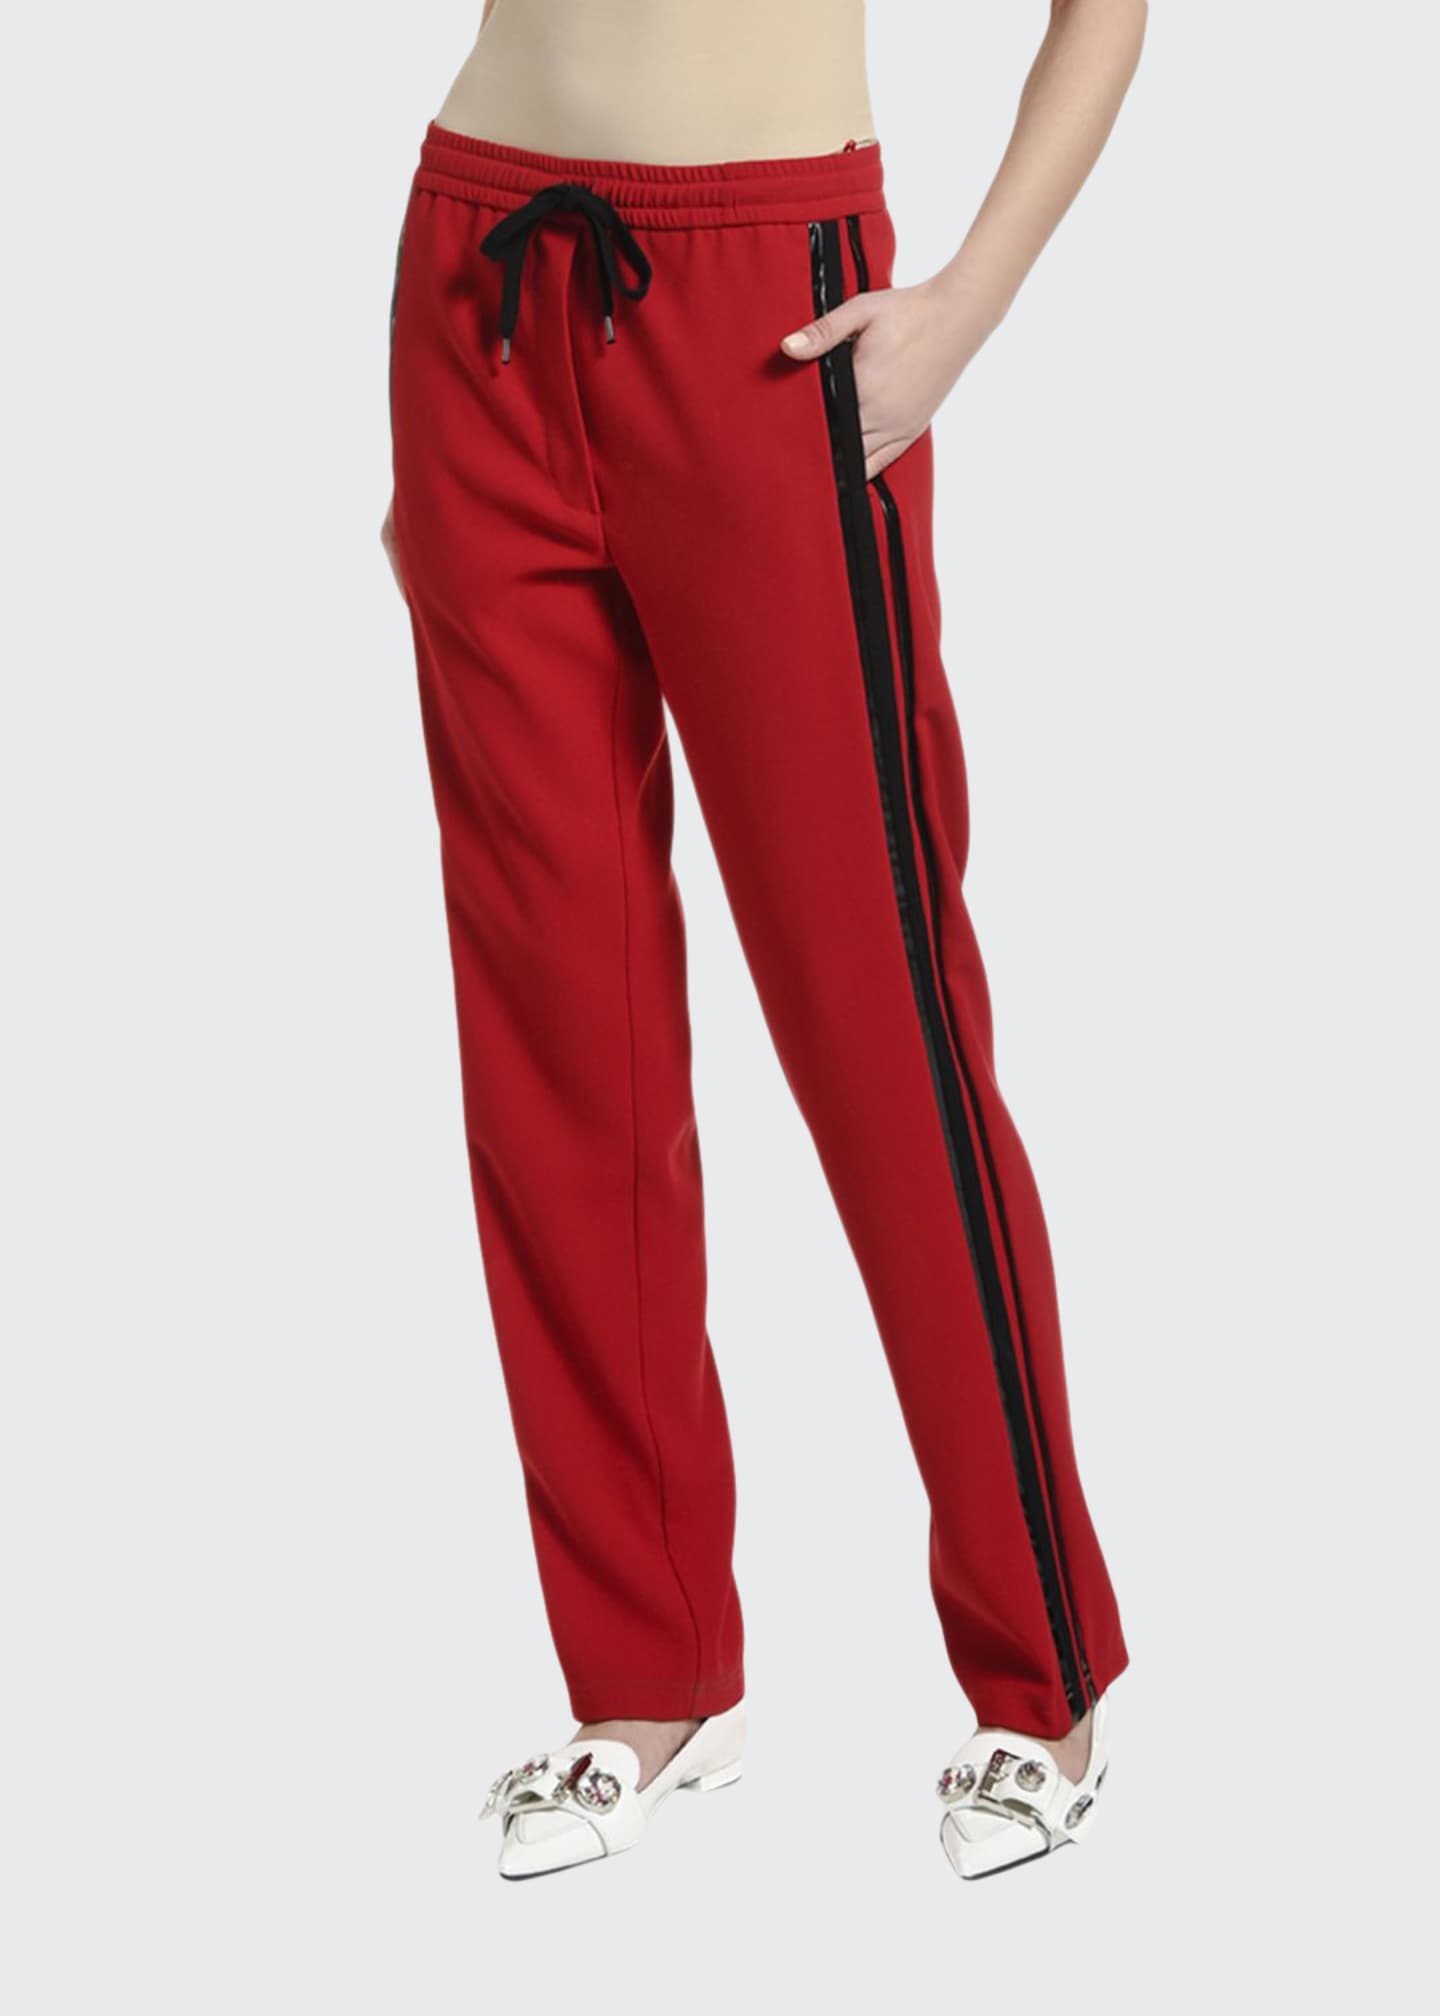 No. 21 Side-Stripe Drawstring Sweatpants